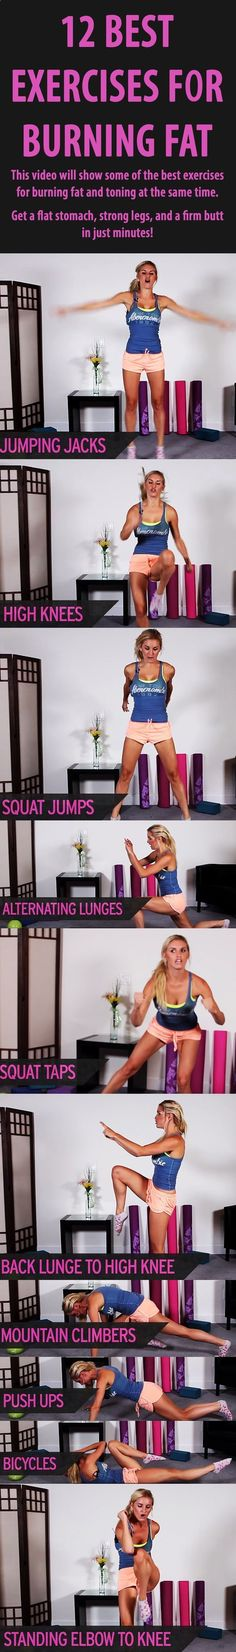 See more here ► www.youtube.com/... Tags: lose weight best way, best way to loss weight, best way for teens to lose weight - Do these for HIIT workout   Calorie burning workout: 12 absolutely best exercises for BURNING FAT.